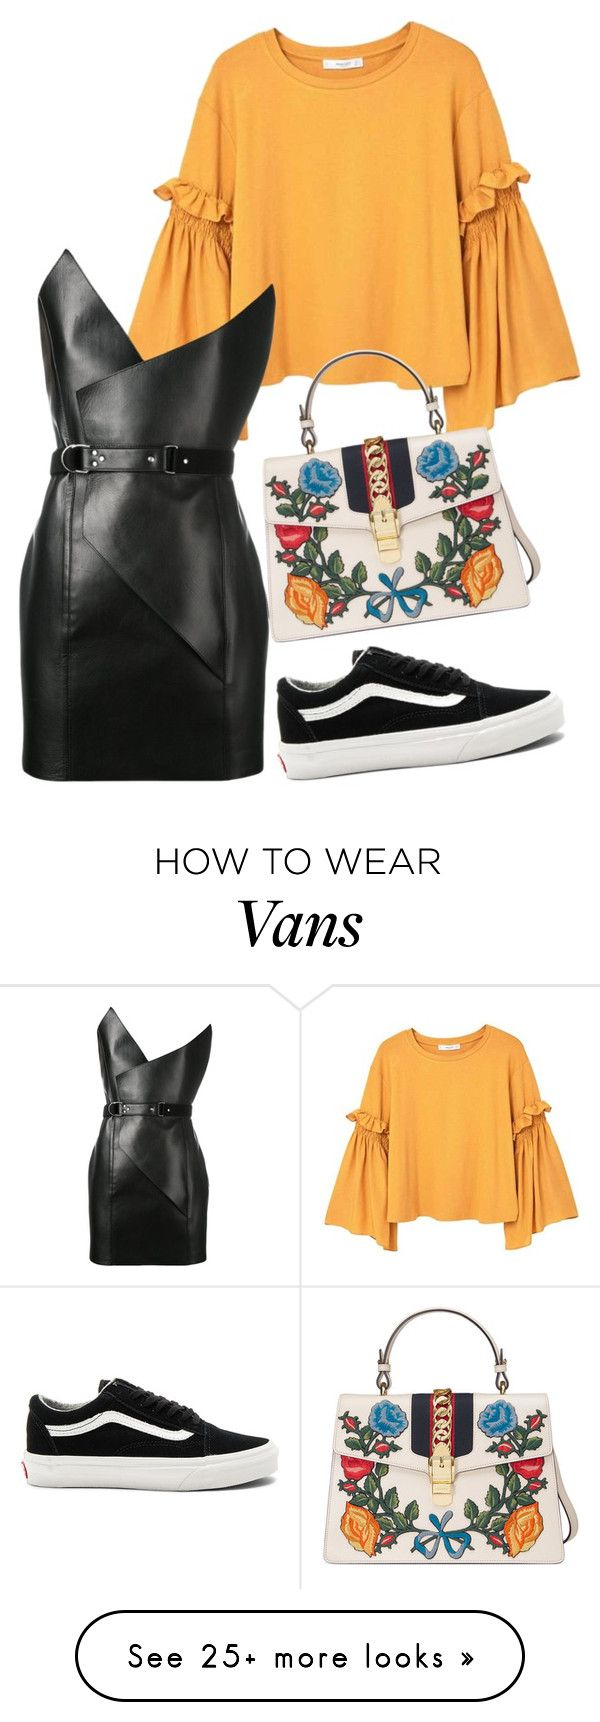 """Untitled #75"" by elenamartinezt on Polyvore featuring MANGO, Yves Saint Laurent, Vans and Gucci"